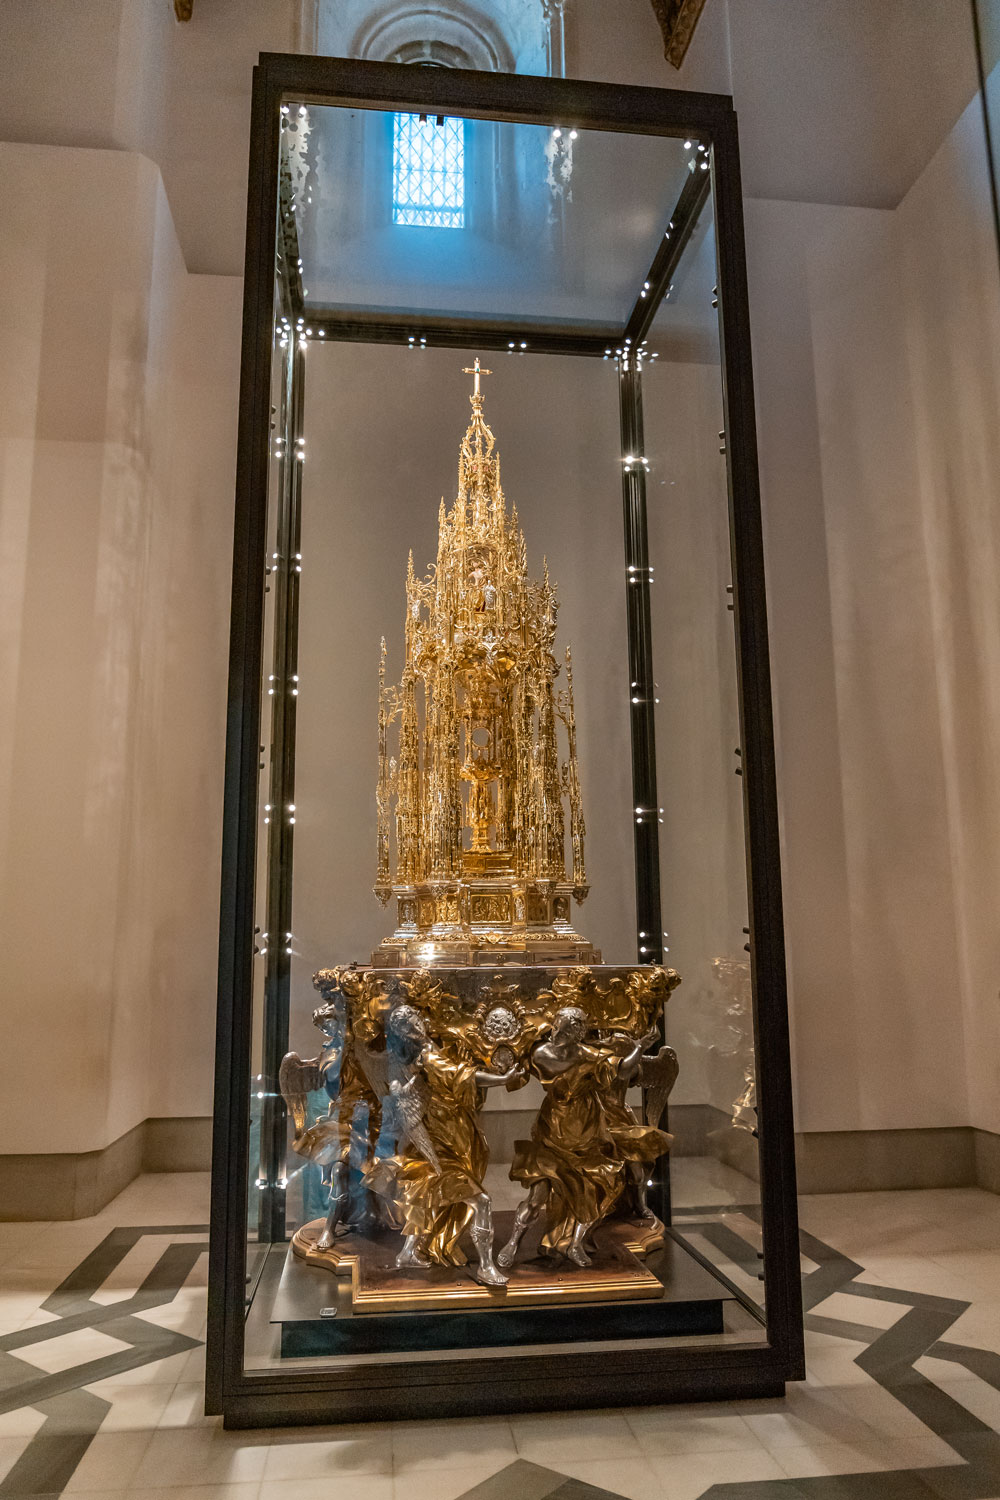 The great Monstrance of Arfe